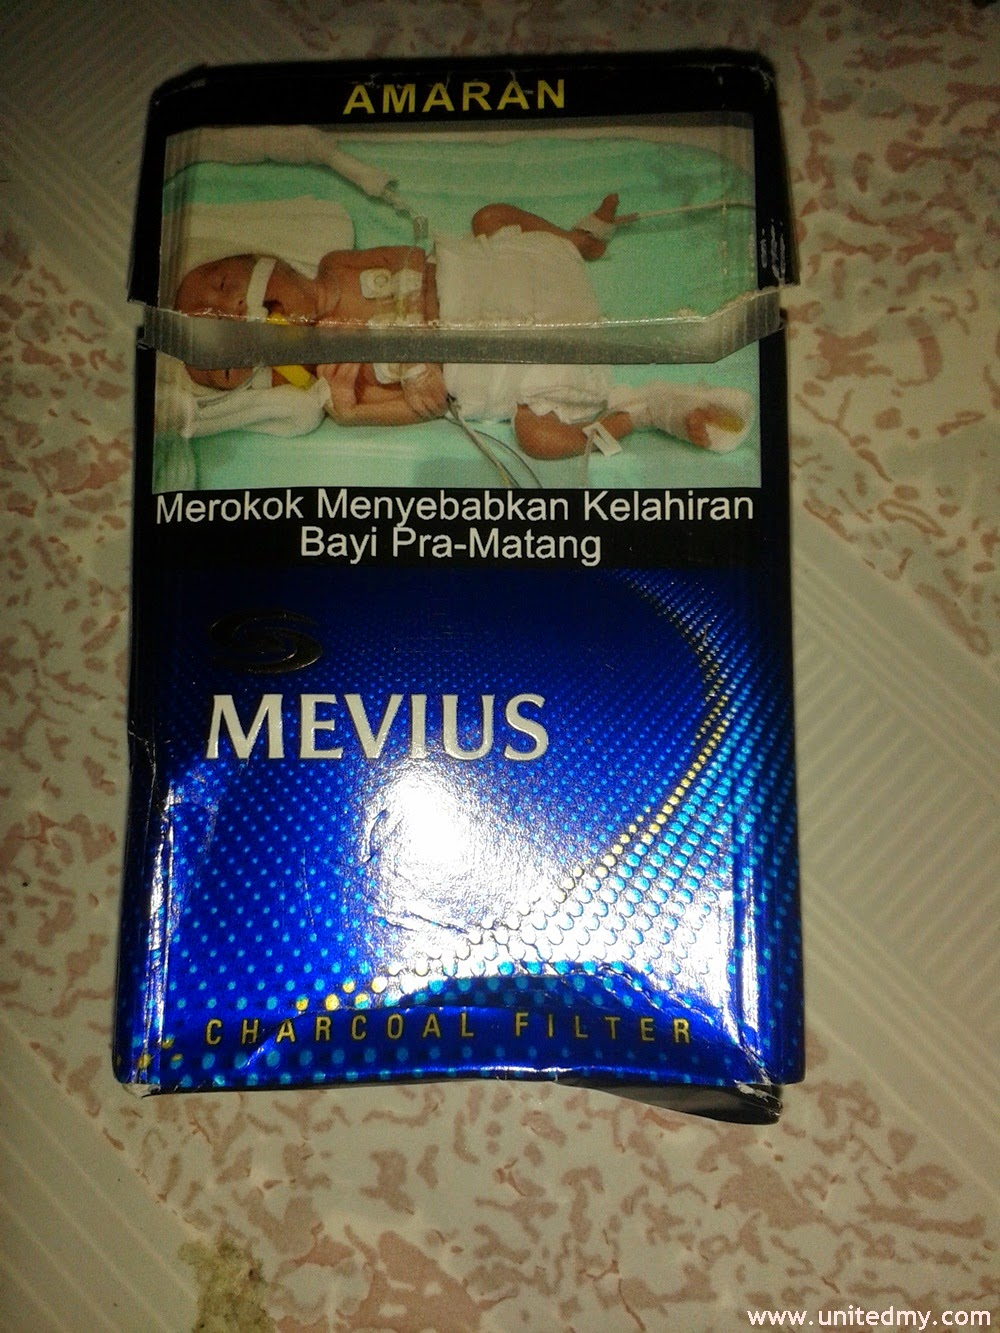 Mevius cigarette blue